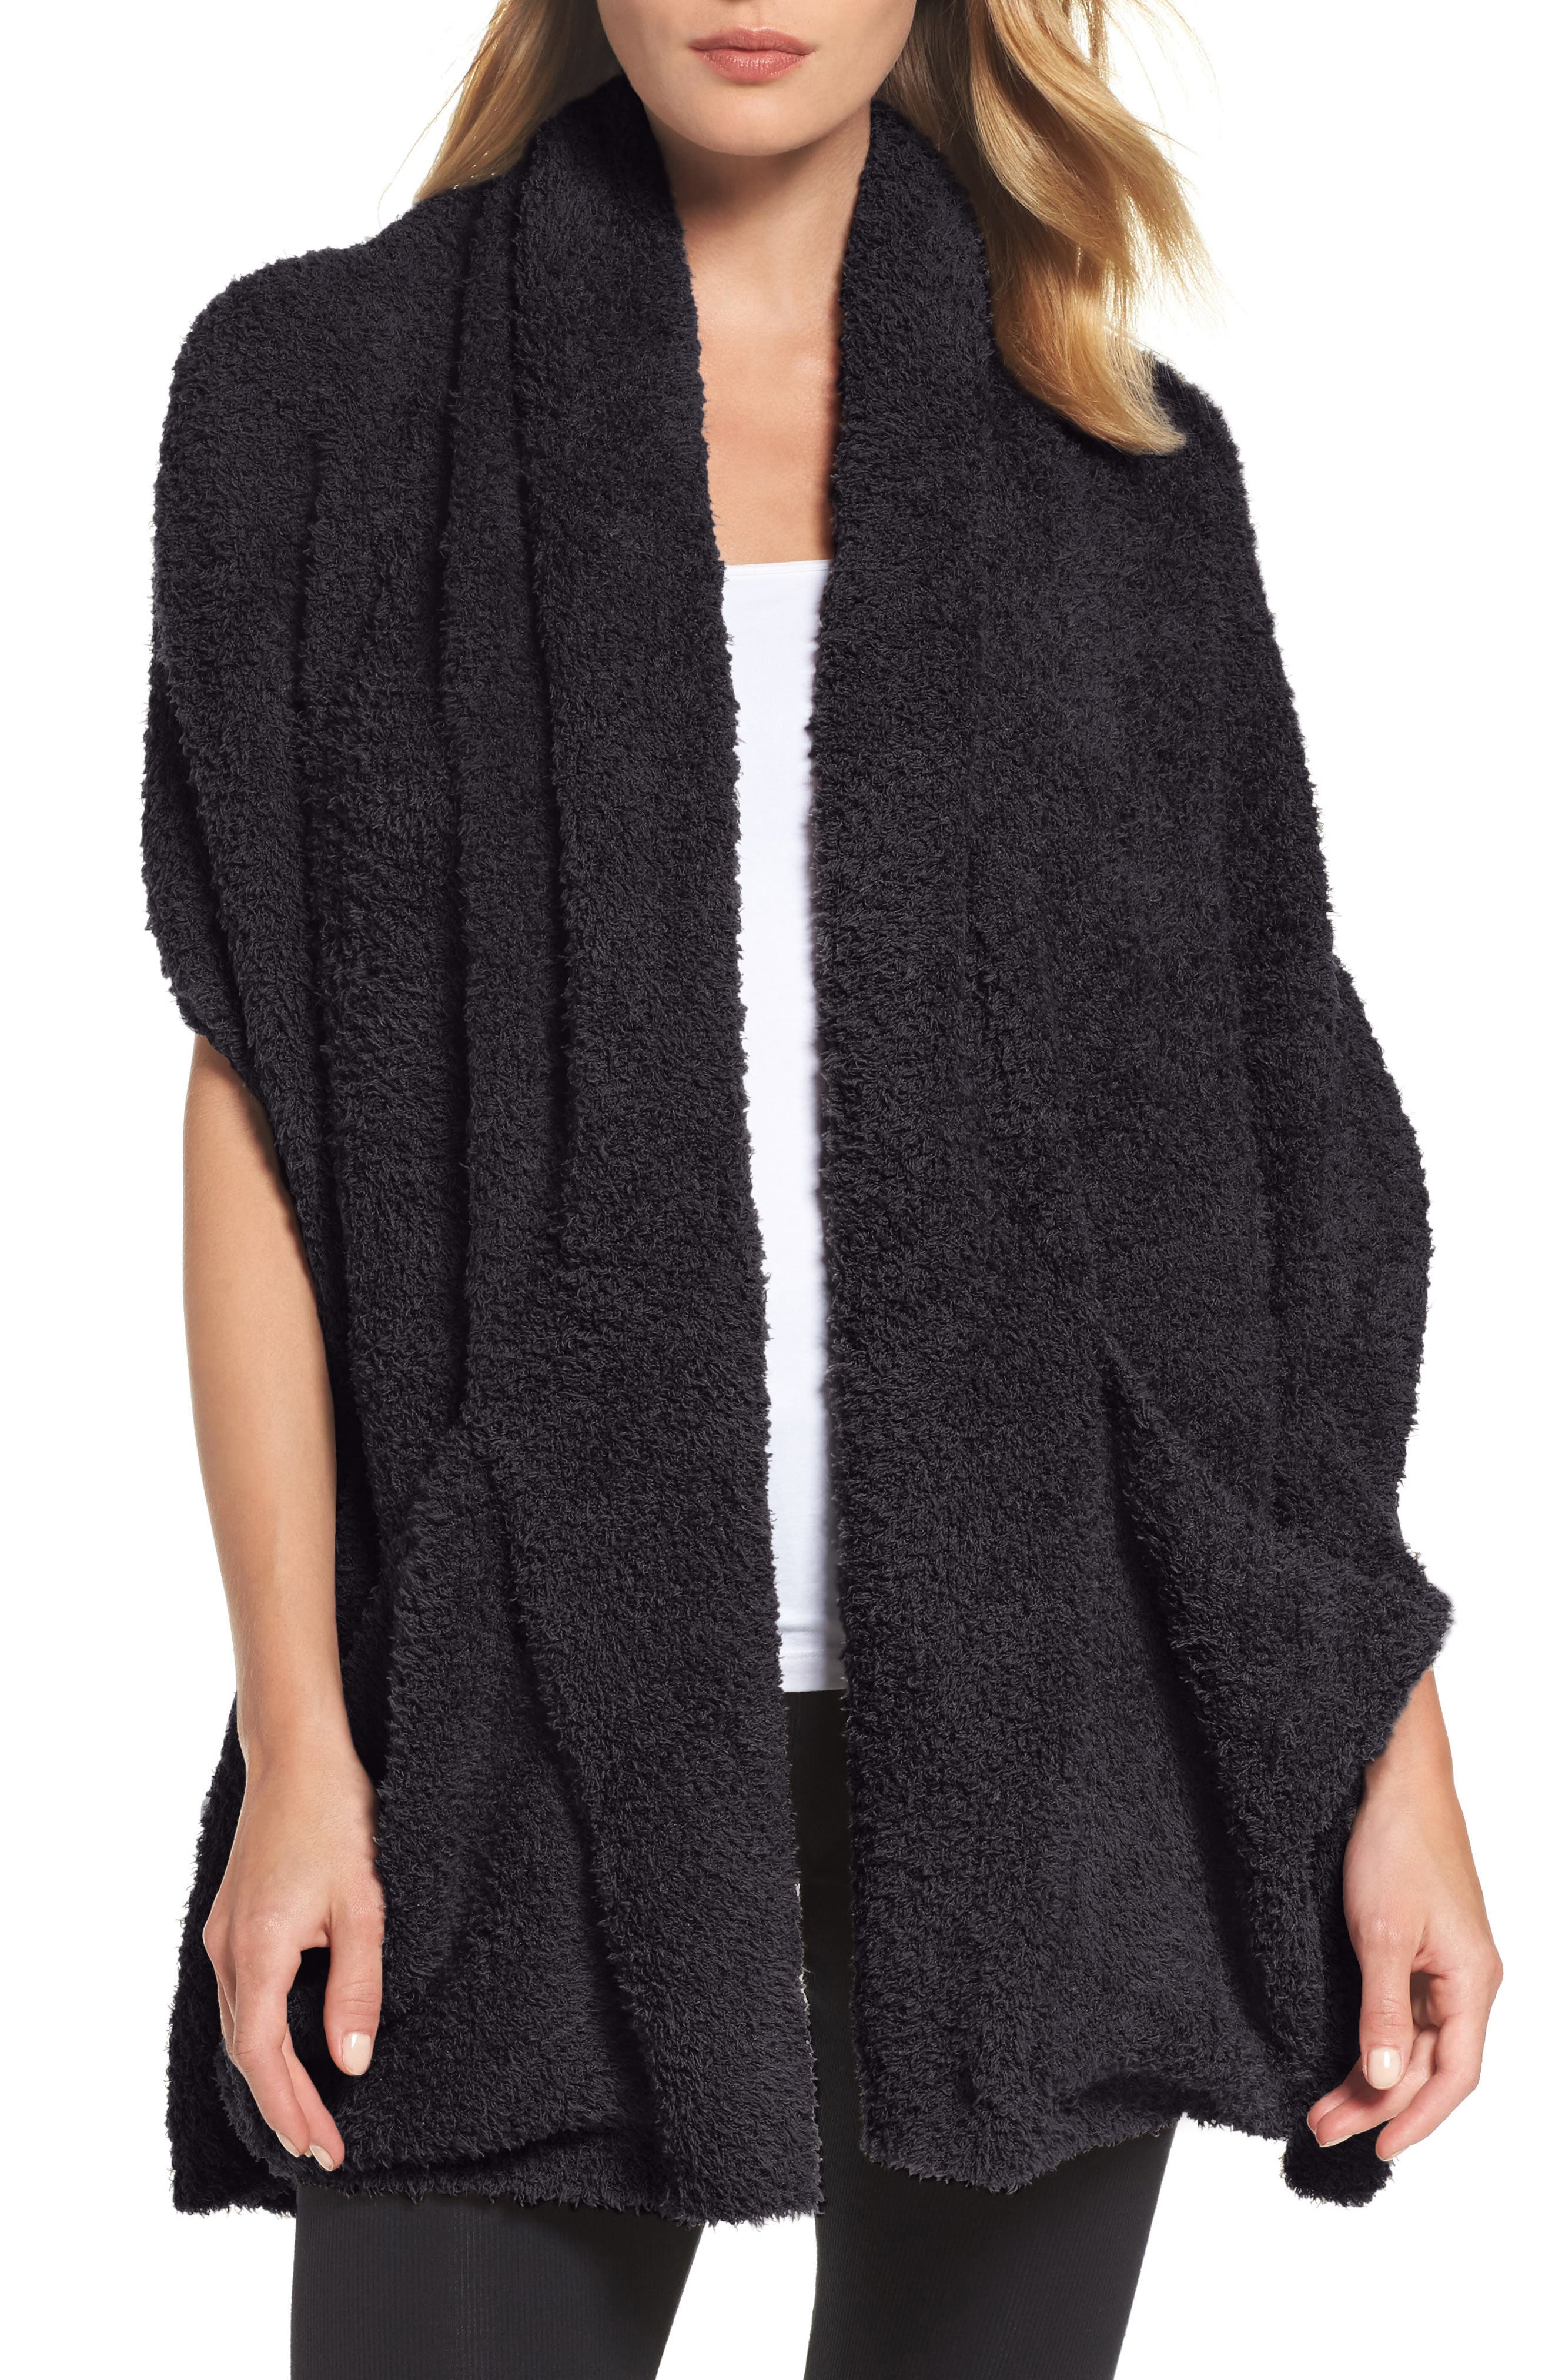 CozyChic<sup>®</sup> Travel Shawl,                             Main thumbnail 1, color,                             BLACK